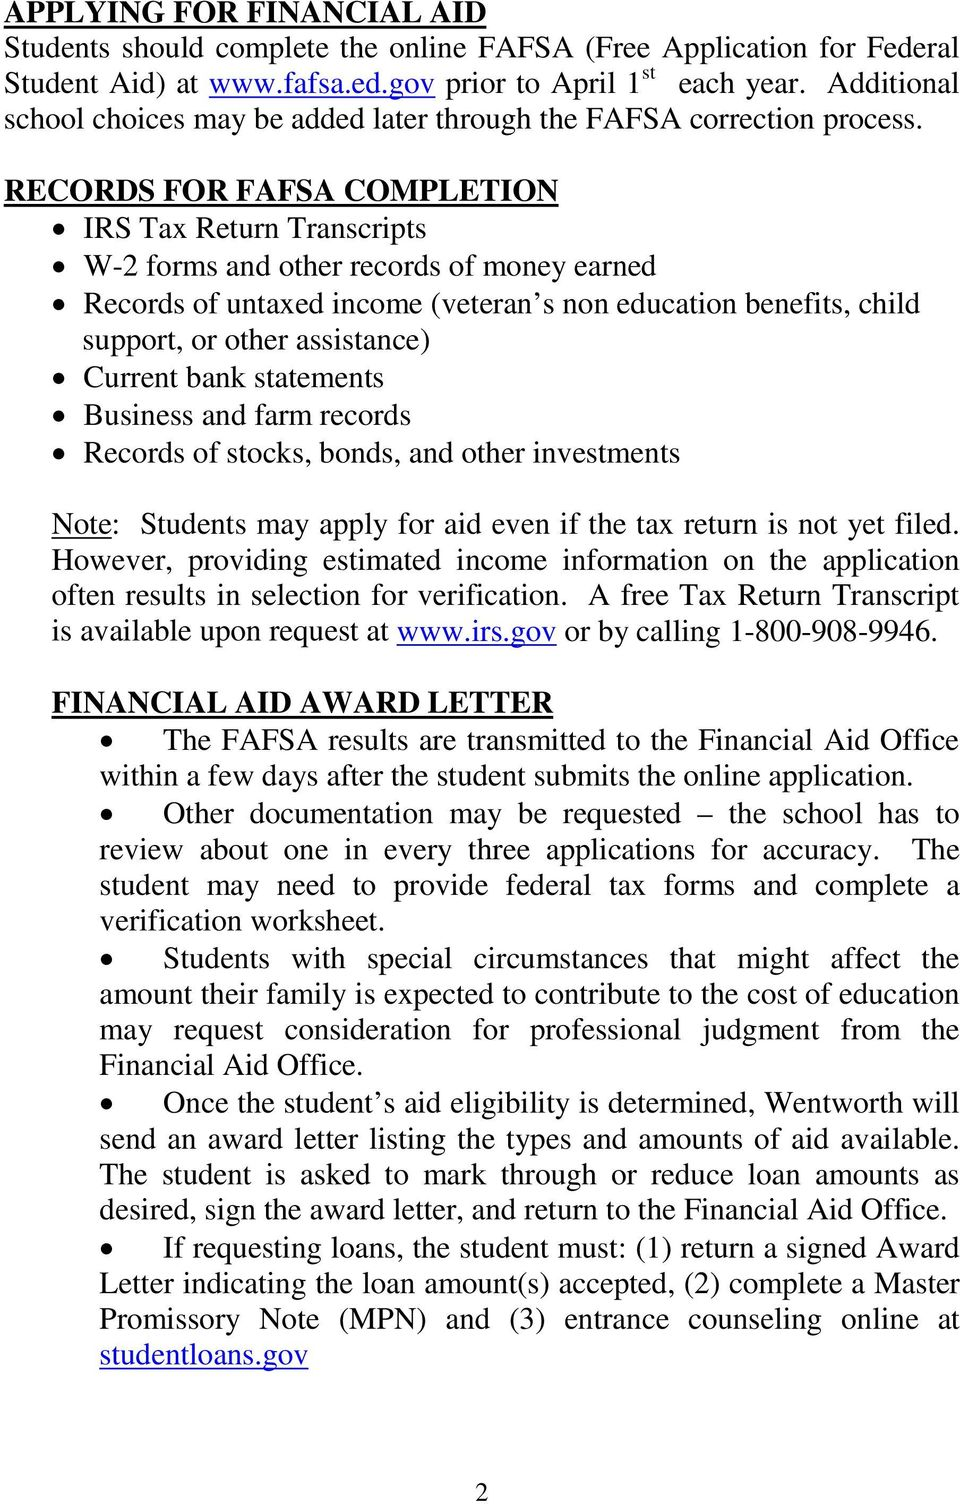 RECORDS FOR FAFSA COMPLETION IRS Tax Return Transcripts W-2 forms and other records of money earned Records of untaxed income (veteran s non education benefits, child support, or other assistance)